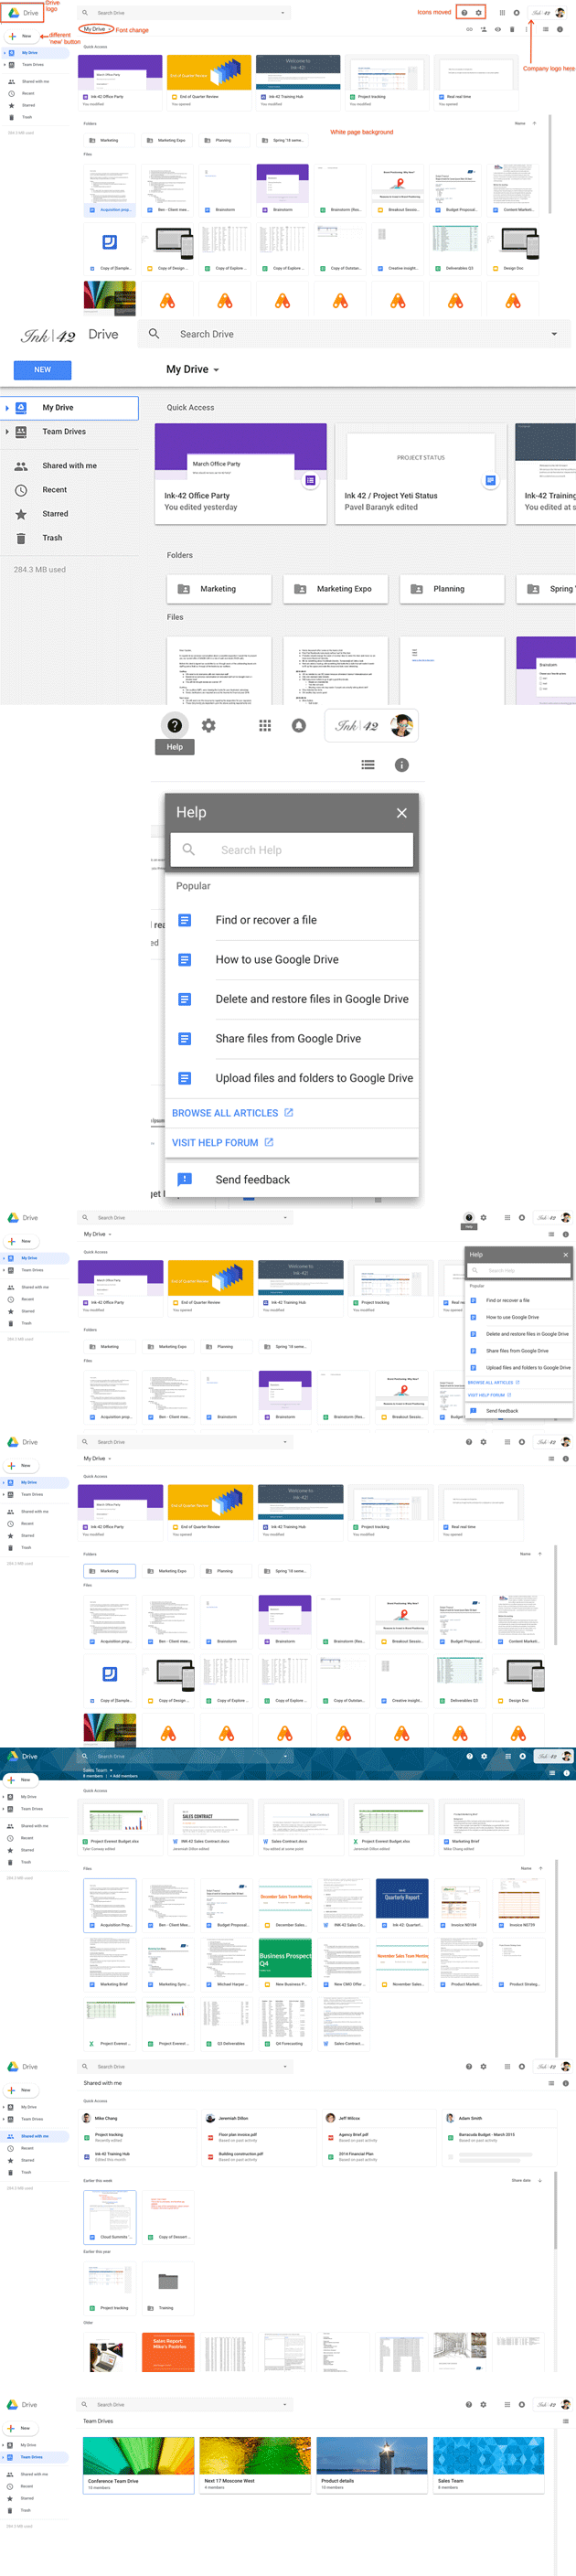 Google Drive - la nuova interfaccia 2018